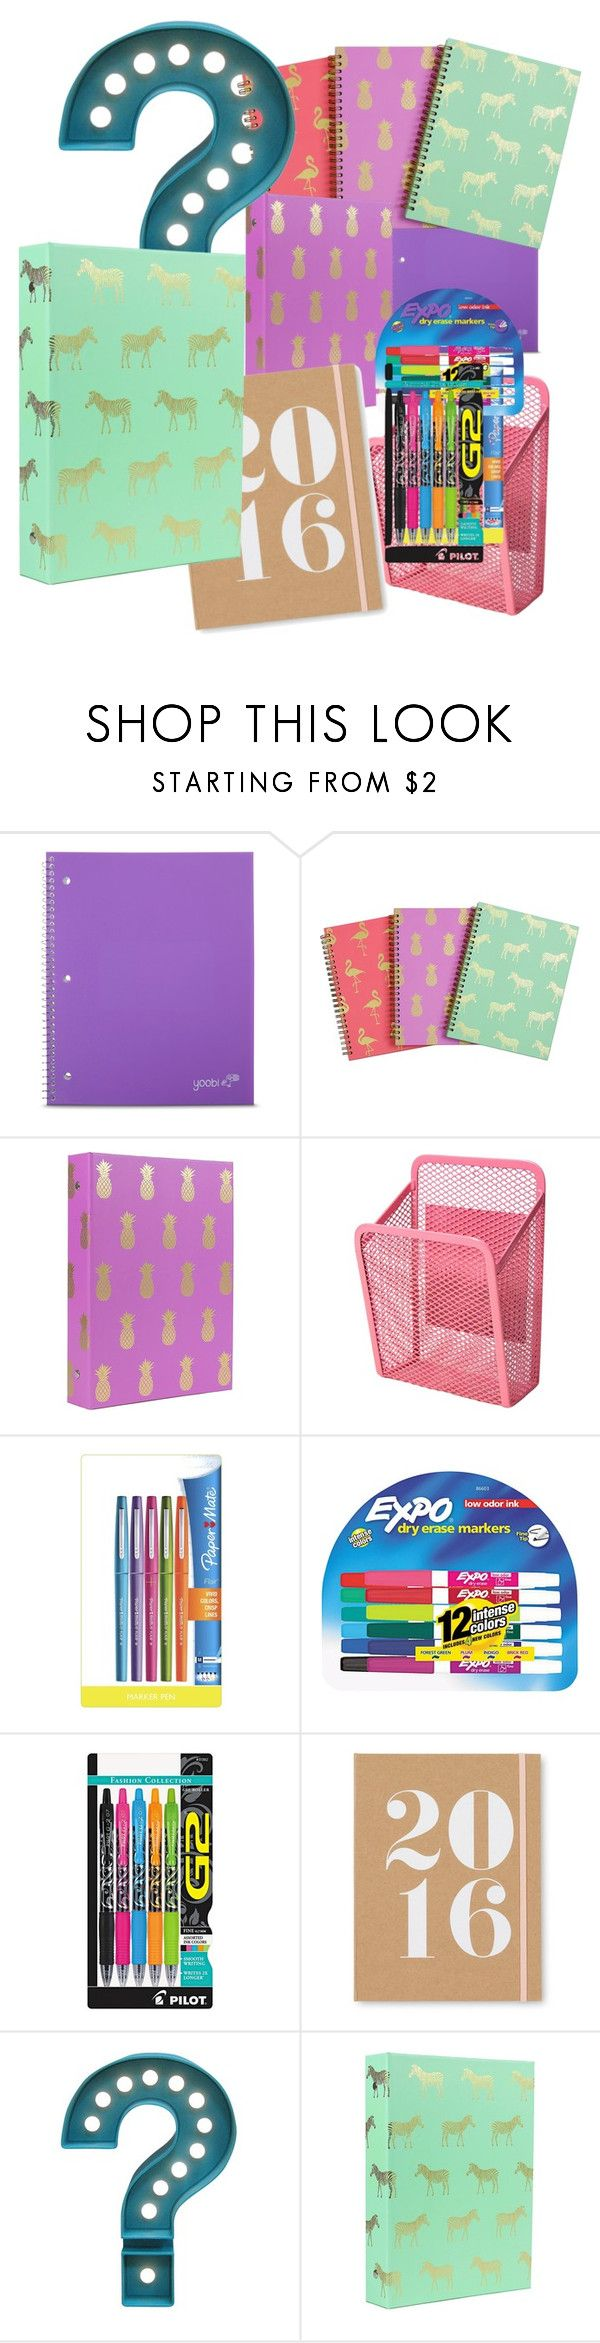 """""""School supplies"""" by gigicr ❤ liked on Polyvore featuring Yoobi, Paper Mate, Expo, Pilot, Sugar Paper, Room Essentials, women's clothing, women's fashion, women and female"""